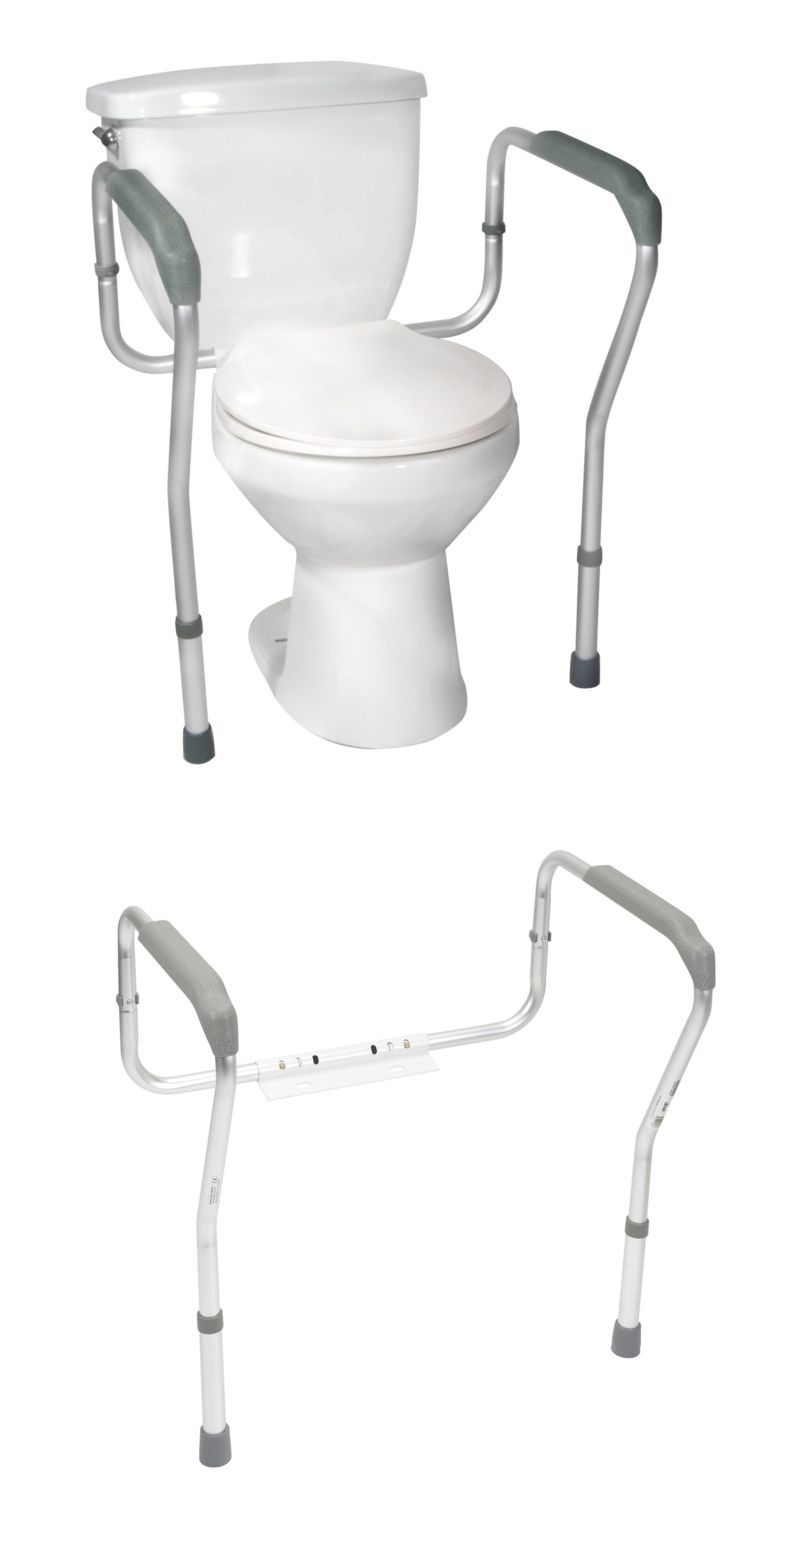 Other Accessibility Fixtures: Toilet Rail Bathroom Seat Safety Frame Elderly  Handicap Toilet Safety Handrail